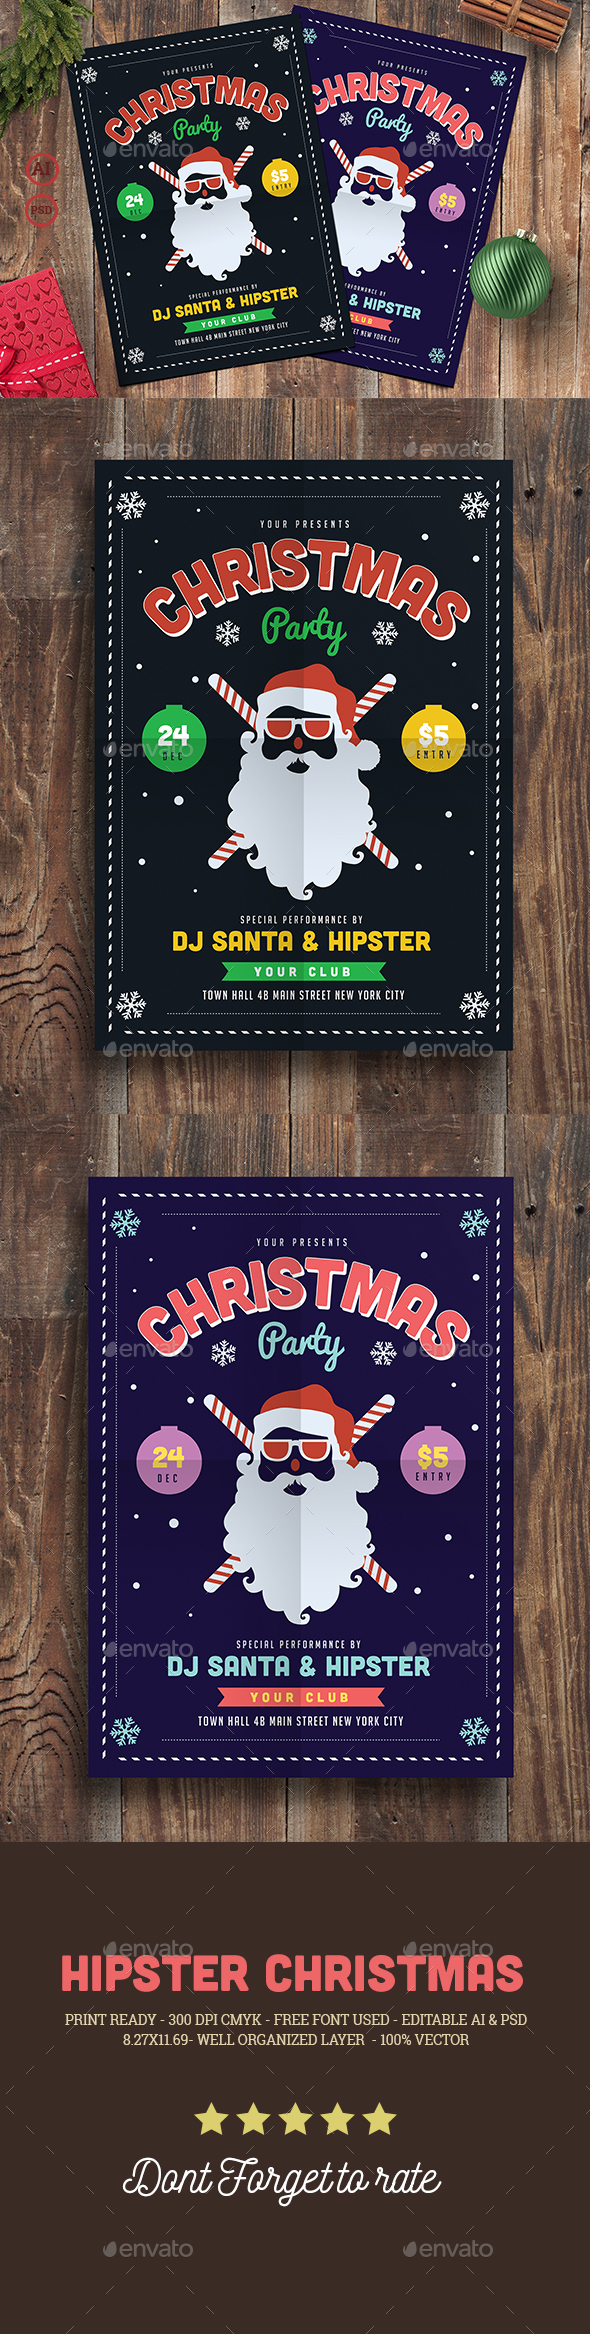 Hipster Christmas Party Flyer - Events Flyers